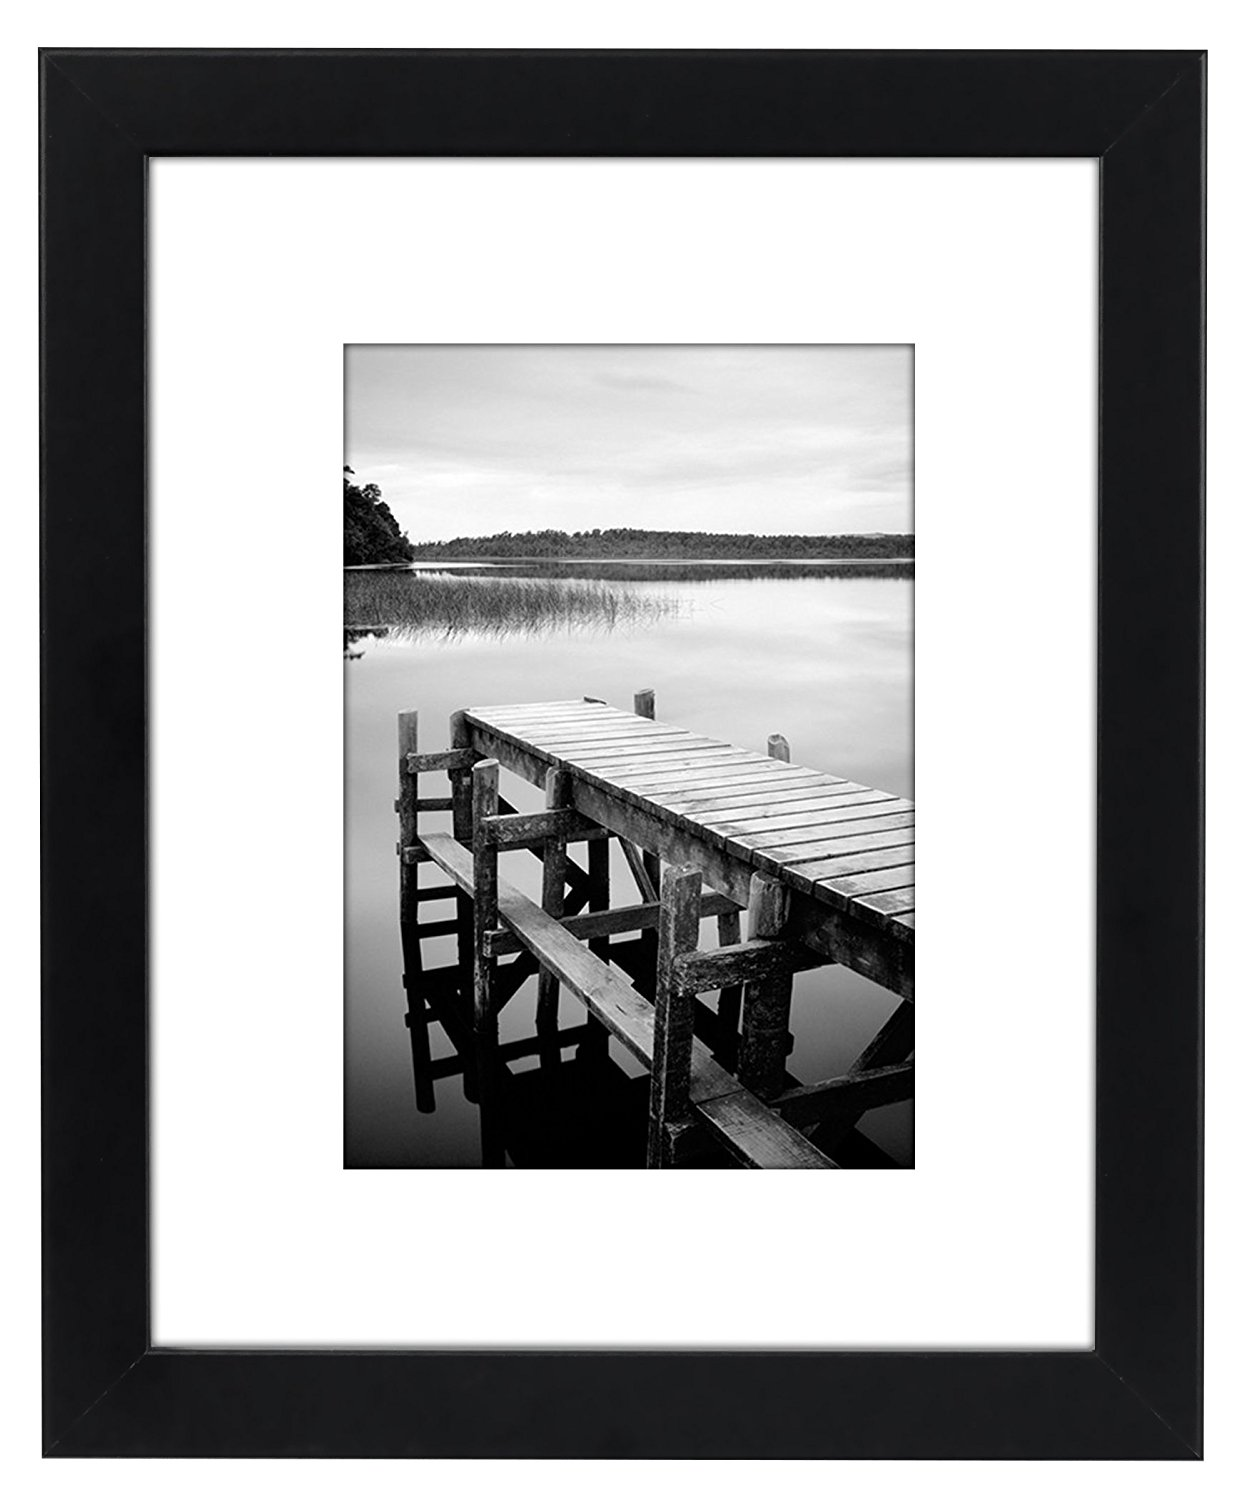 Americanflat 8x10 Black Picture Frame by Americanflat